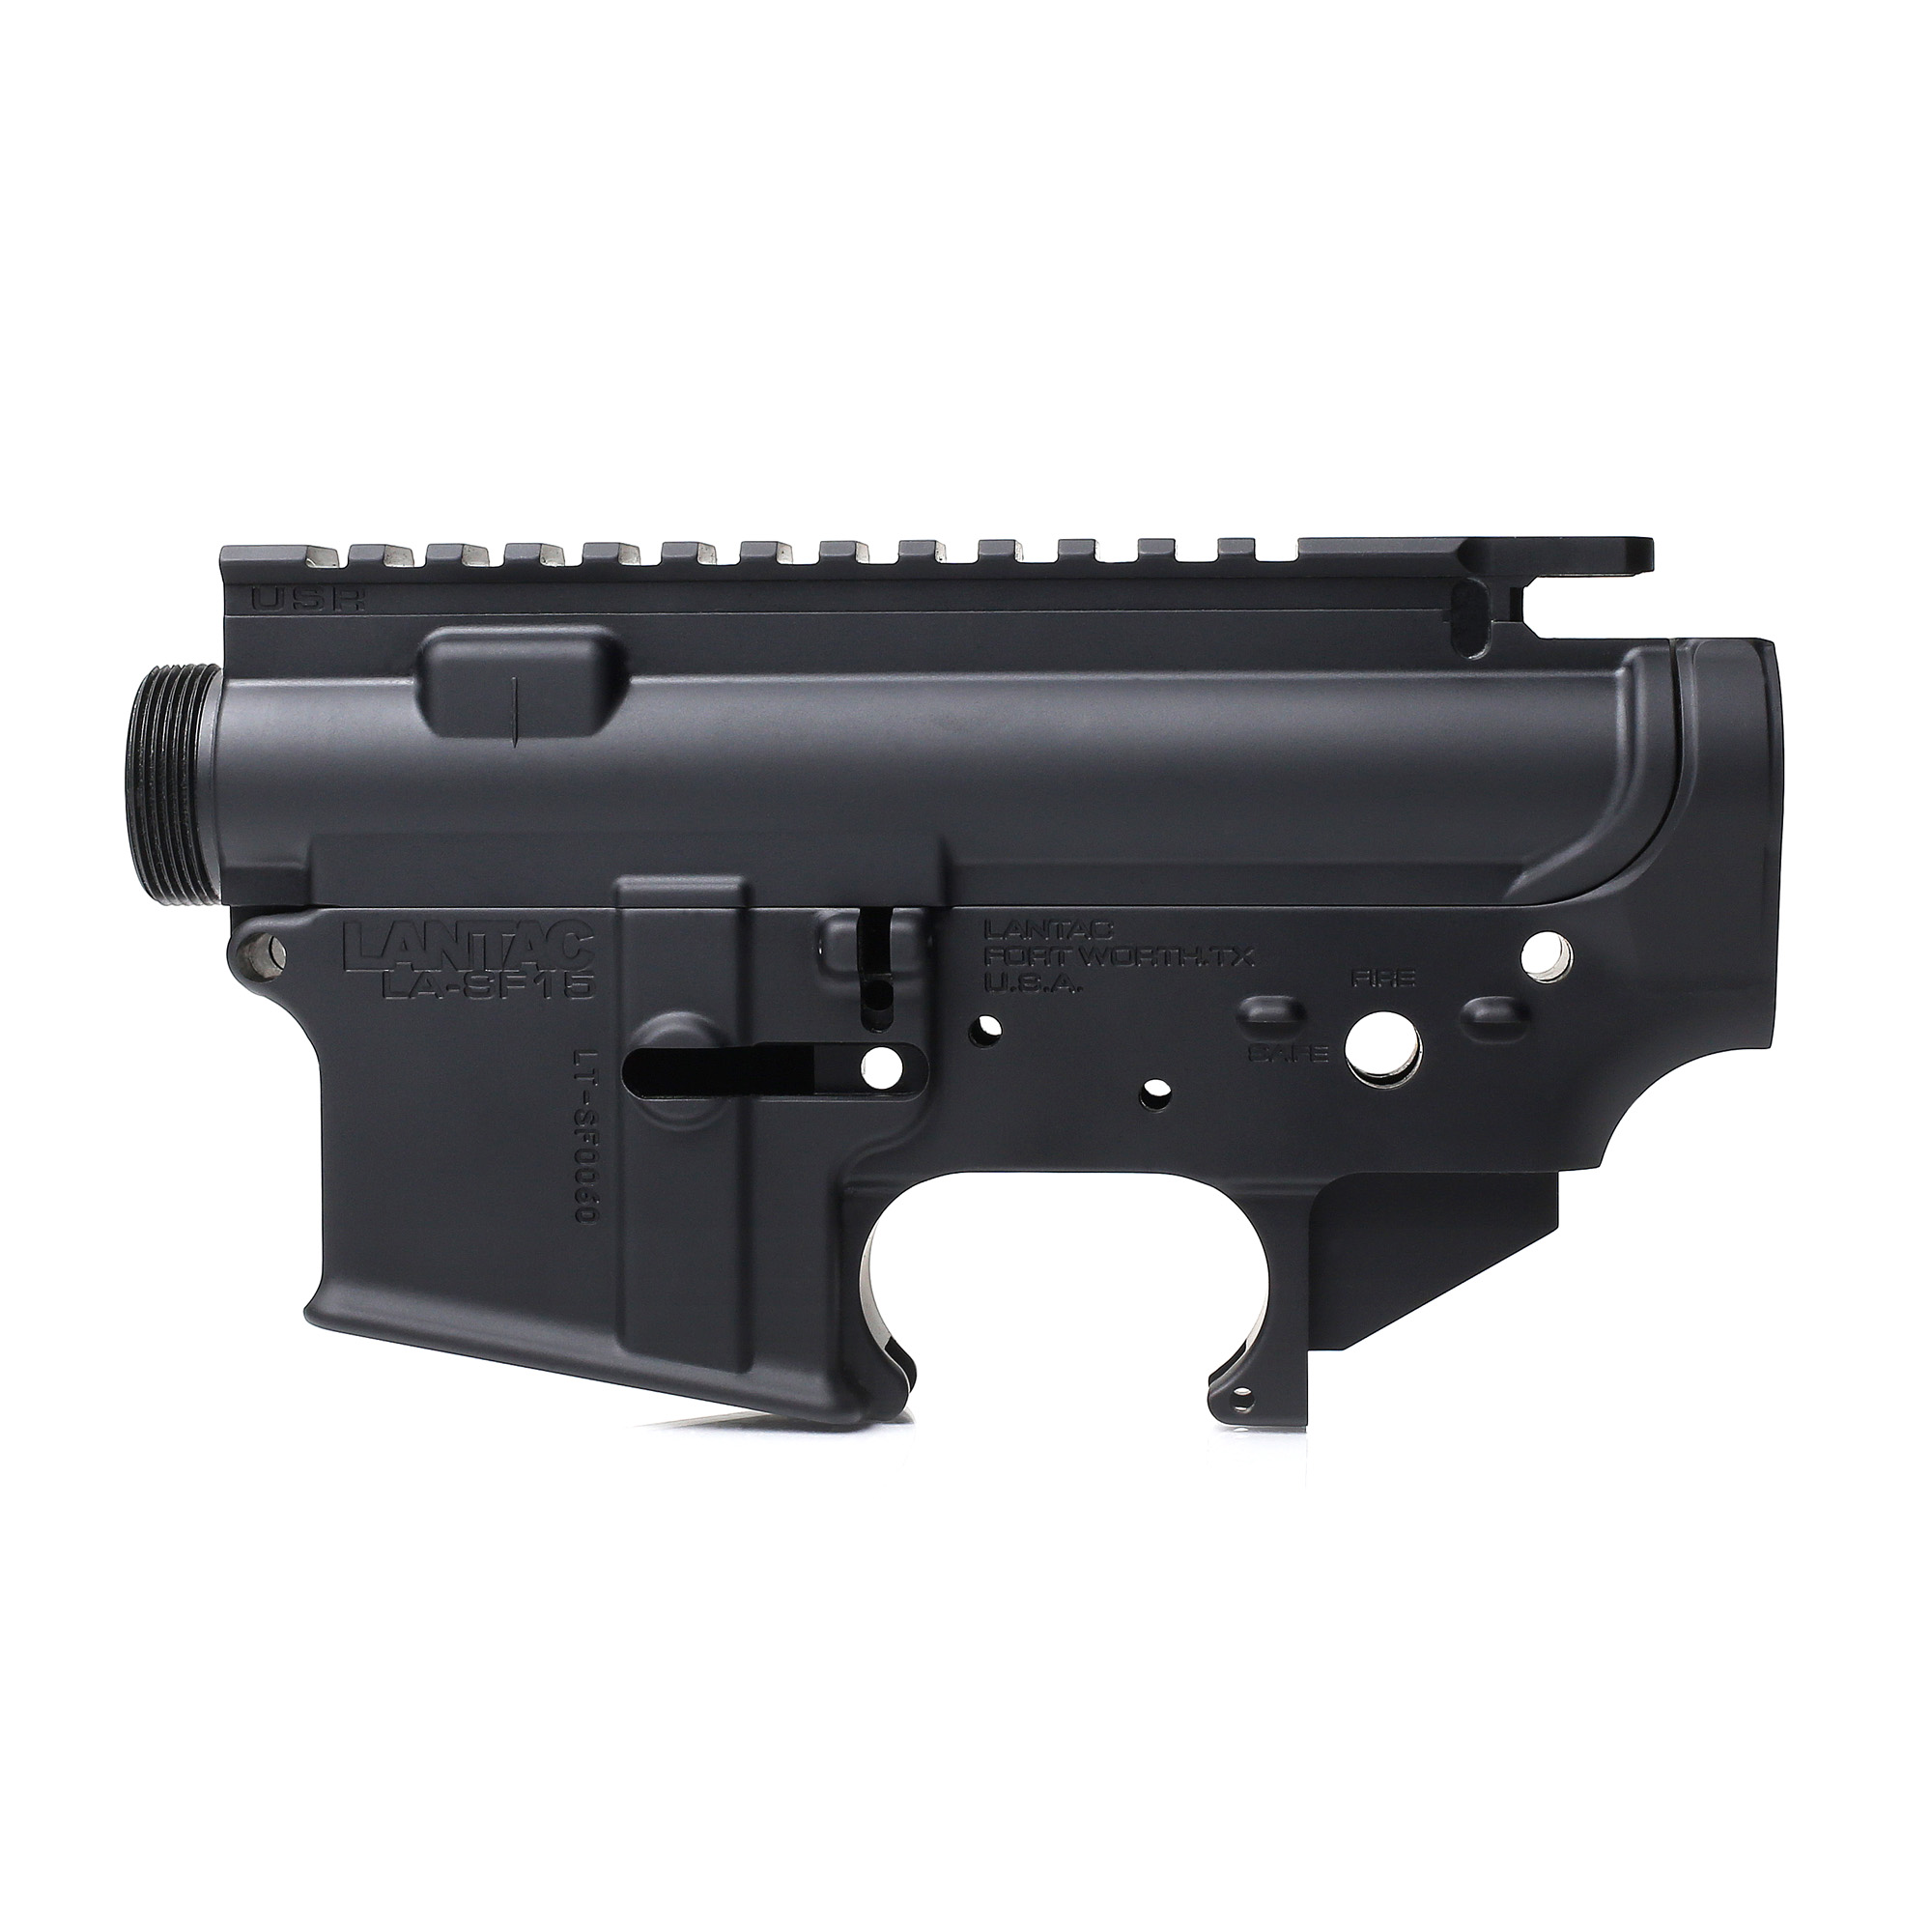 The LANTAC LA-SF15(TM) Forged Receiver Set is packed with 'above milspec' features that makes it the ideal choice for shooters looking for an enhanced configuration while retaining a traditional look.